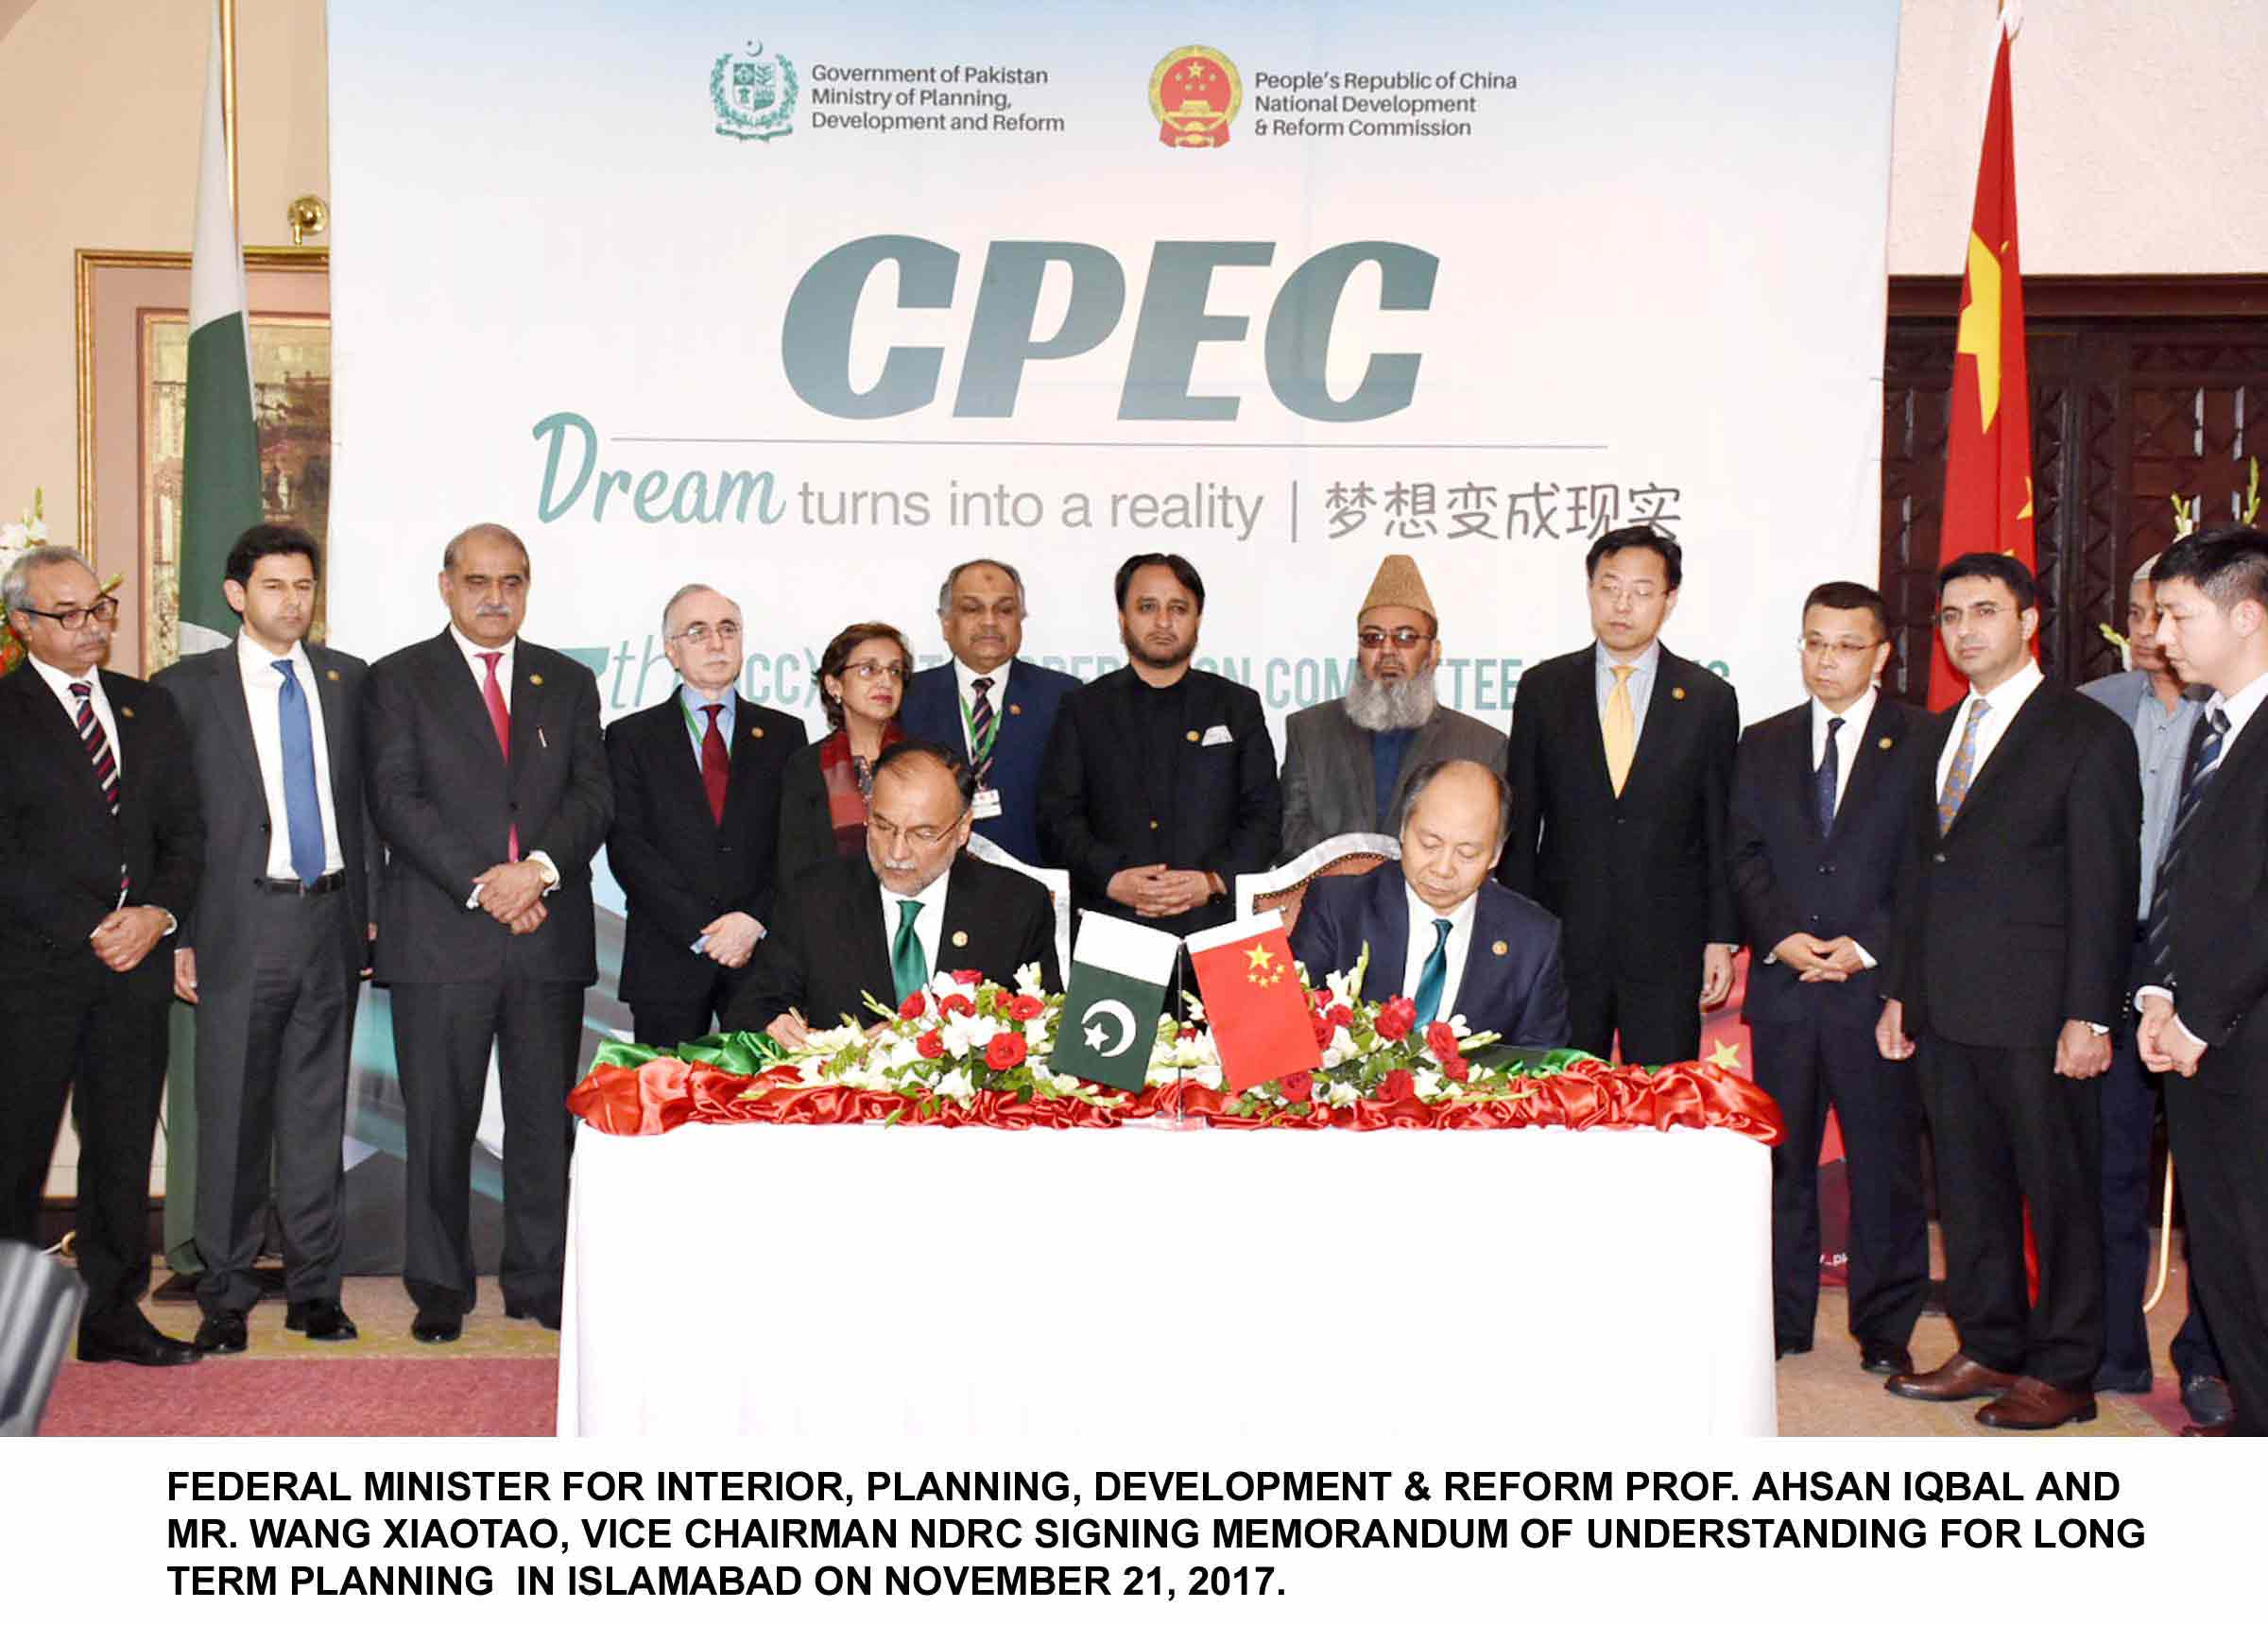 7th JCC Meeting of CPEC in Islamabad on November 21, 2017